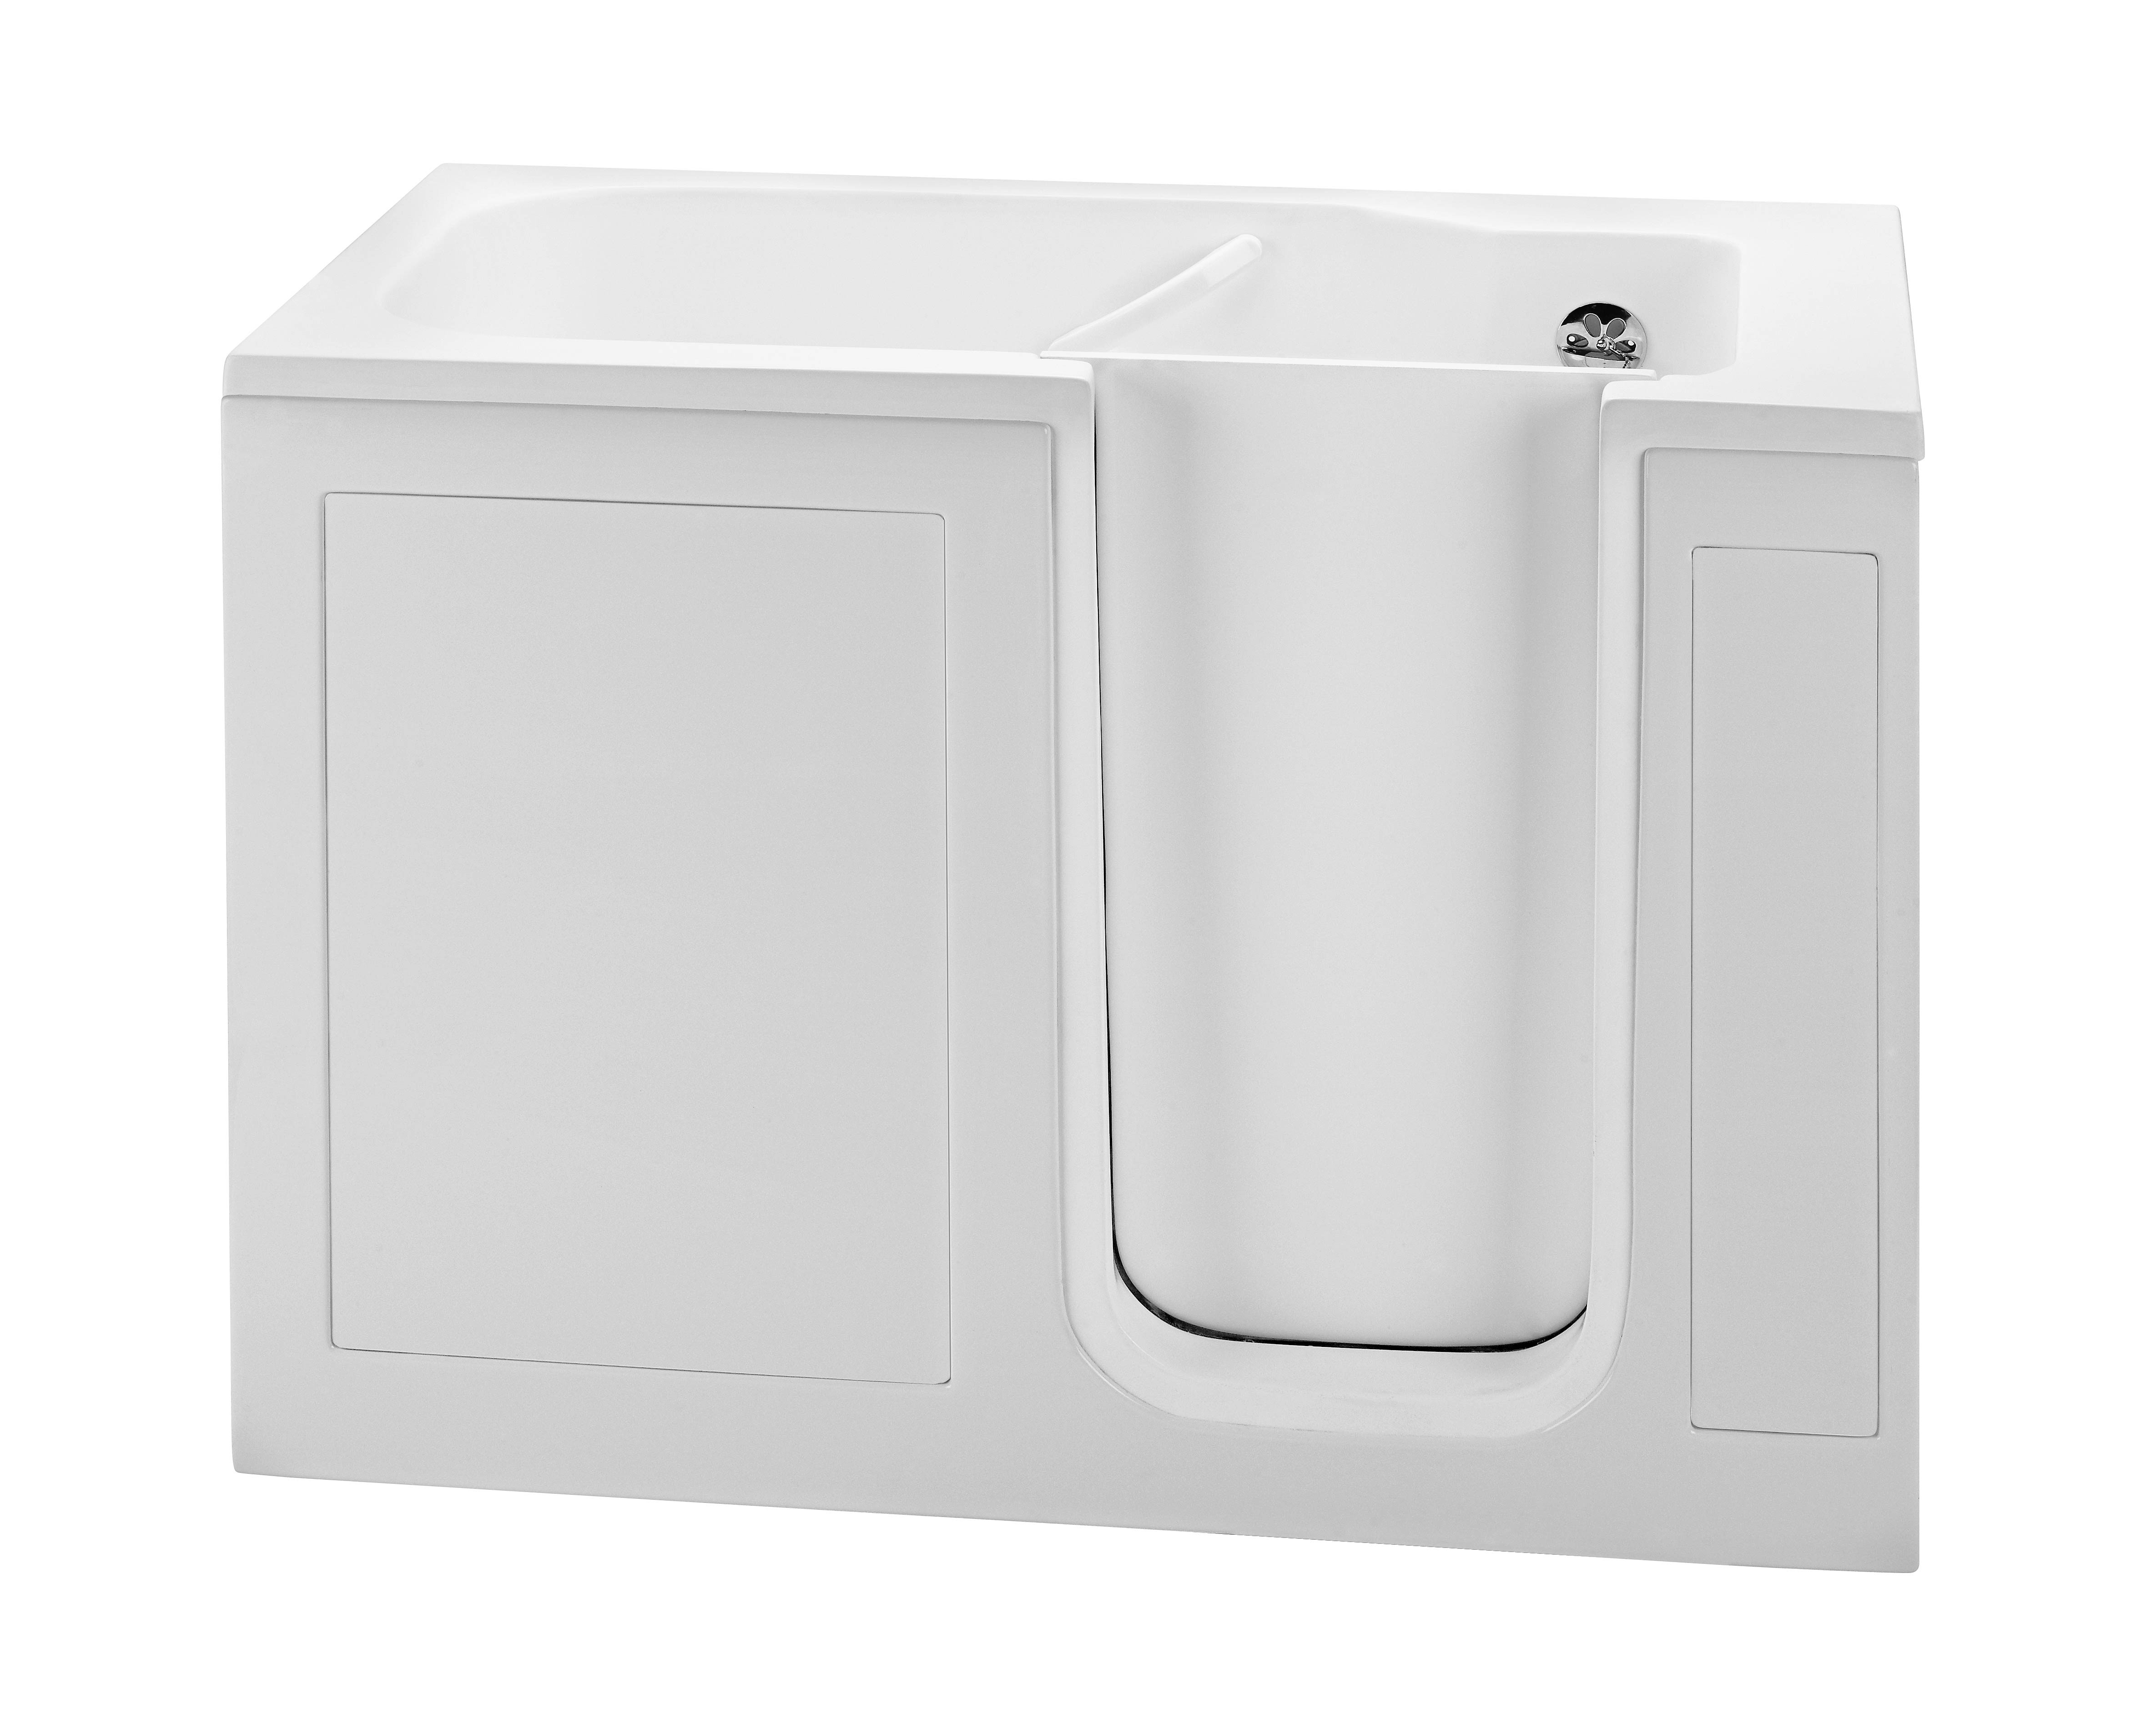 Reliance RWI5030C 51.5 Inch Walk in Air Bath WP Combo with Valves